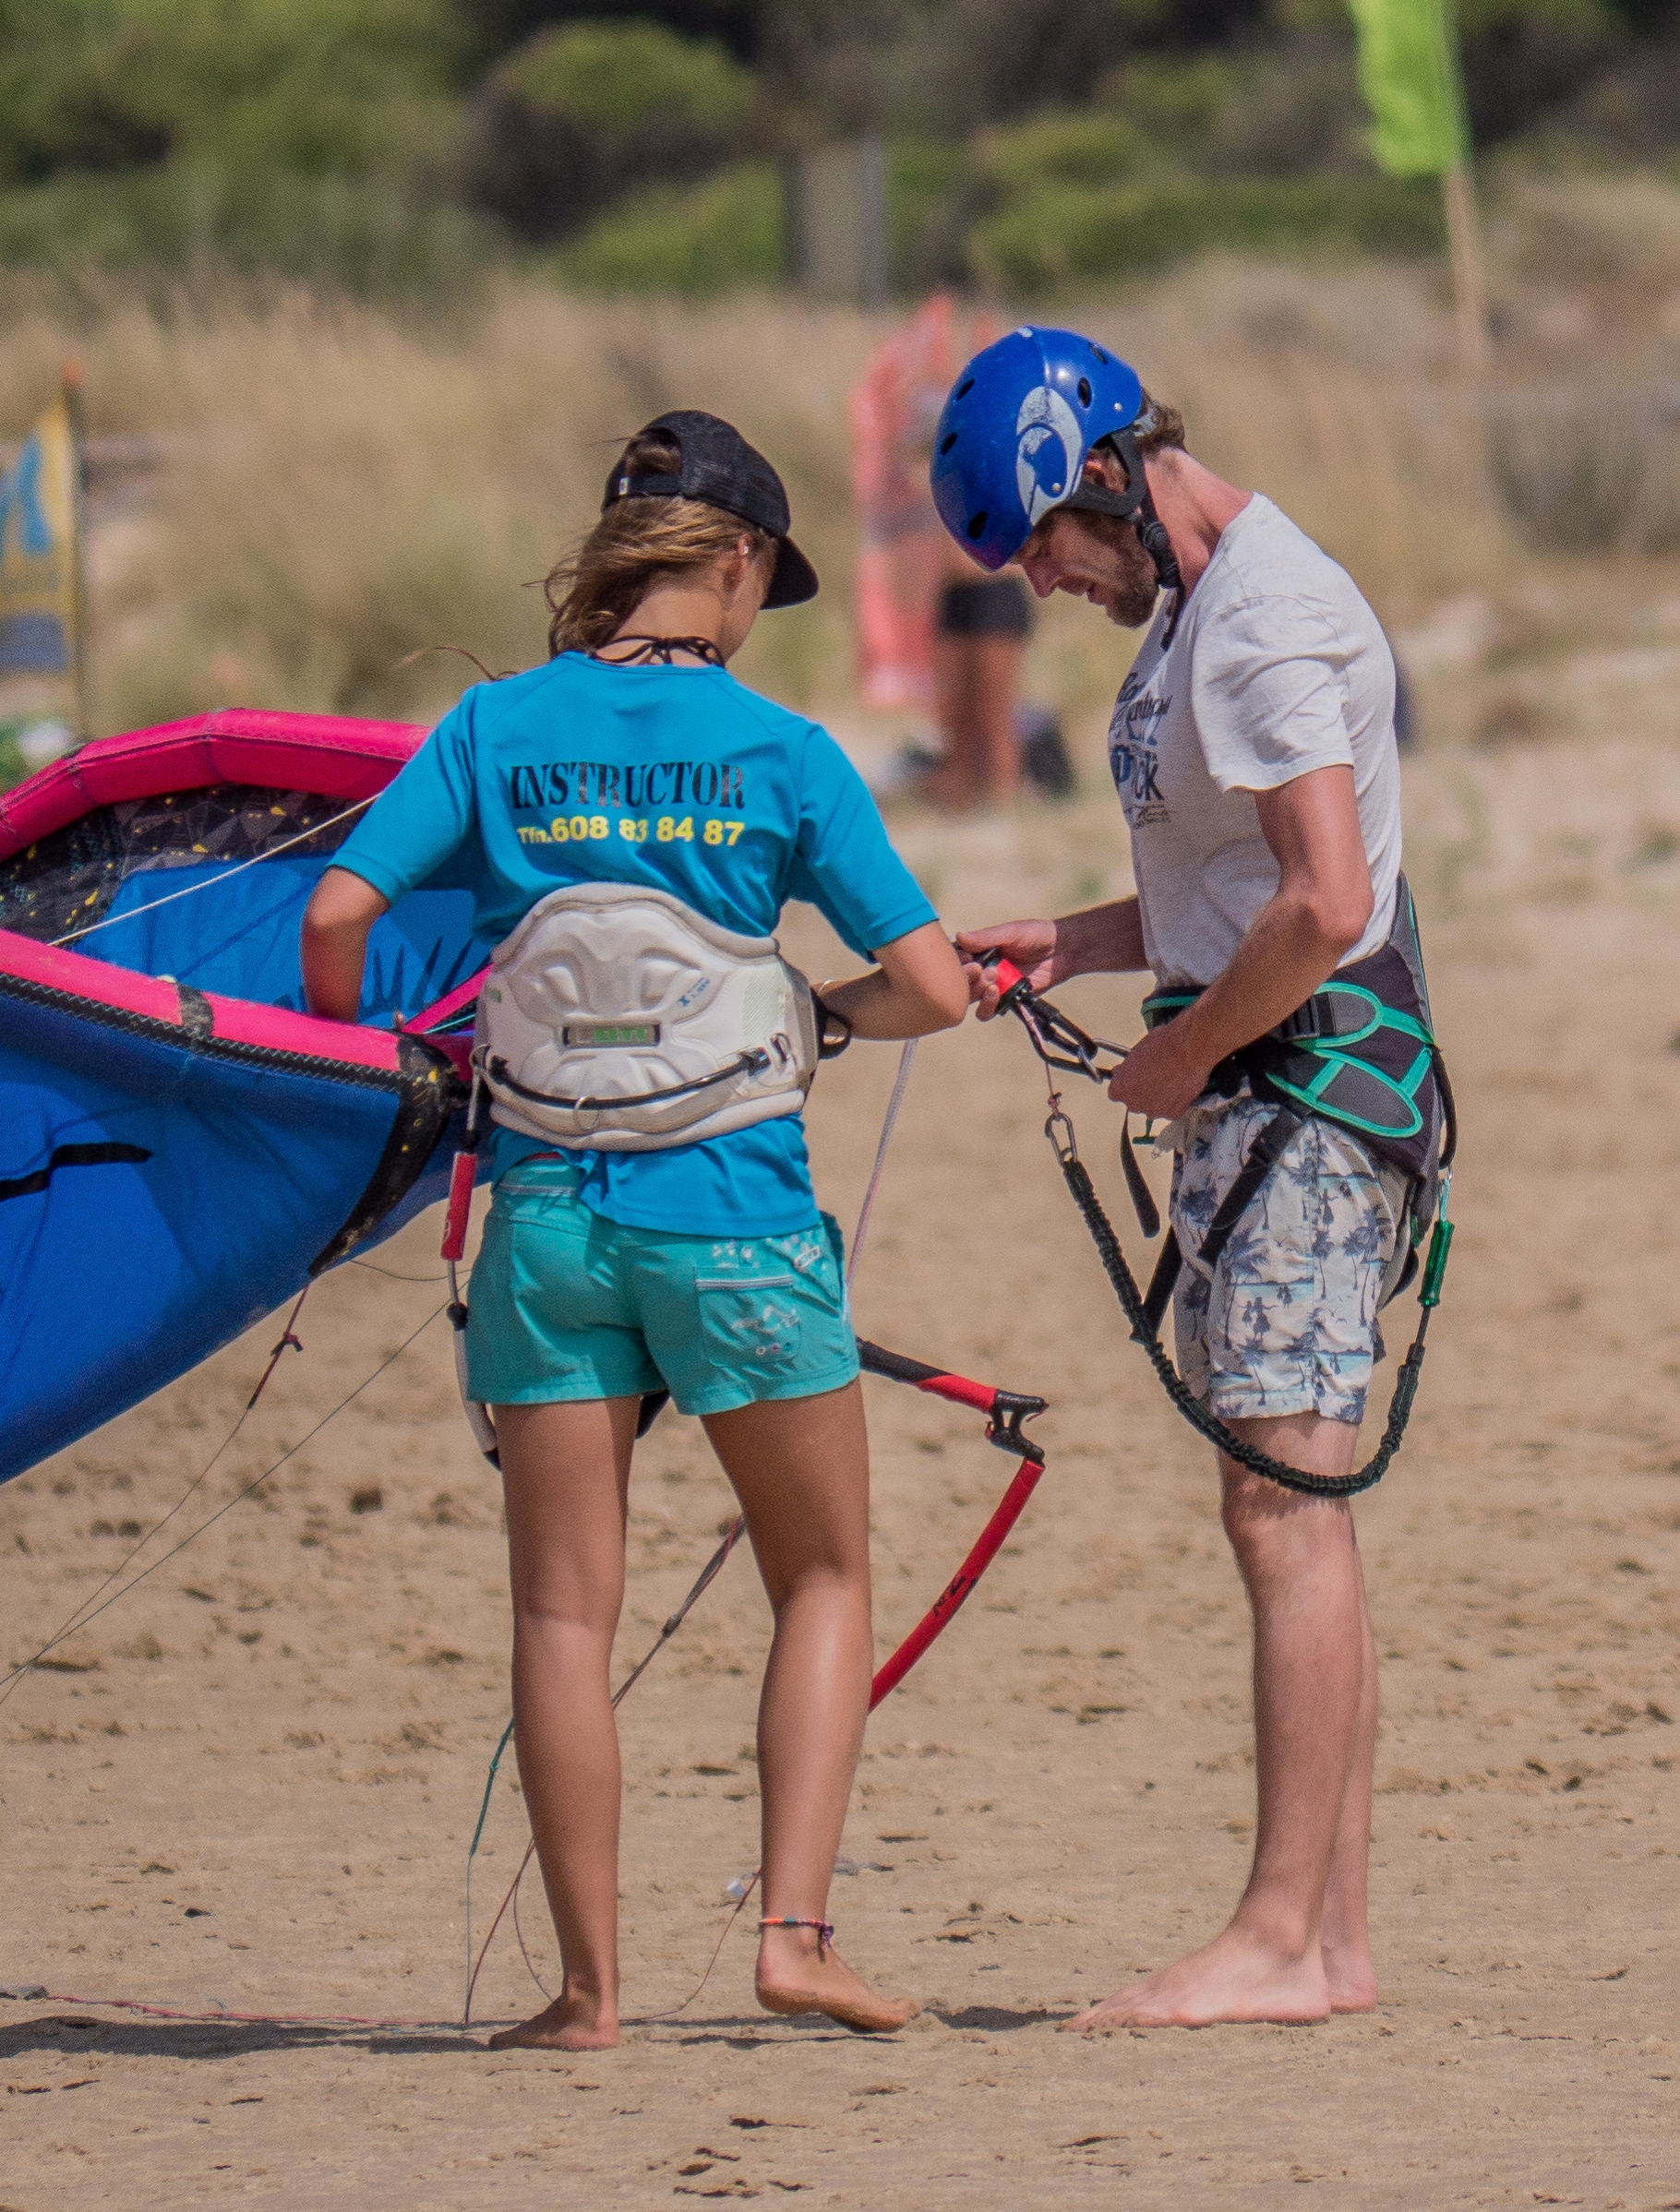 Get the basics in Kitesurfing!